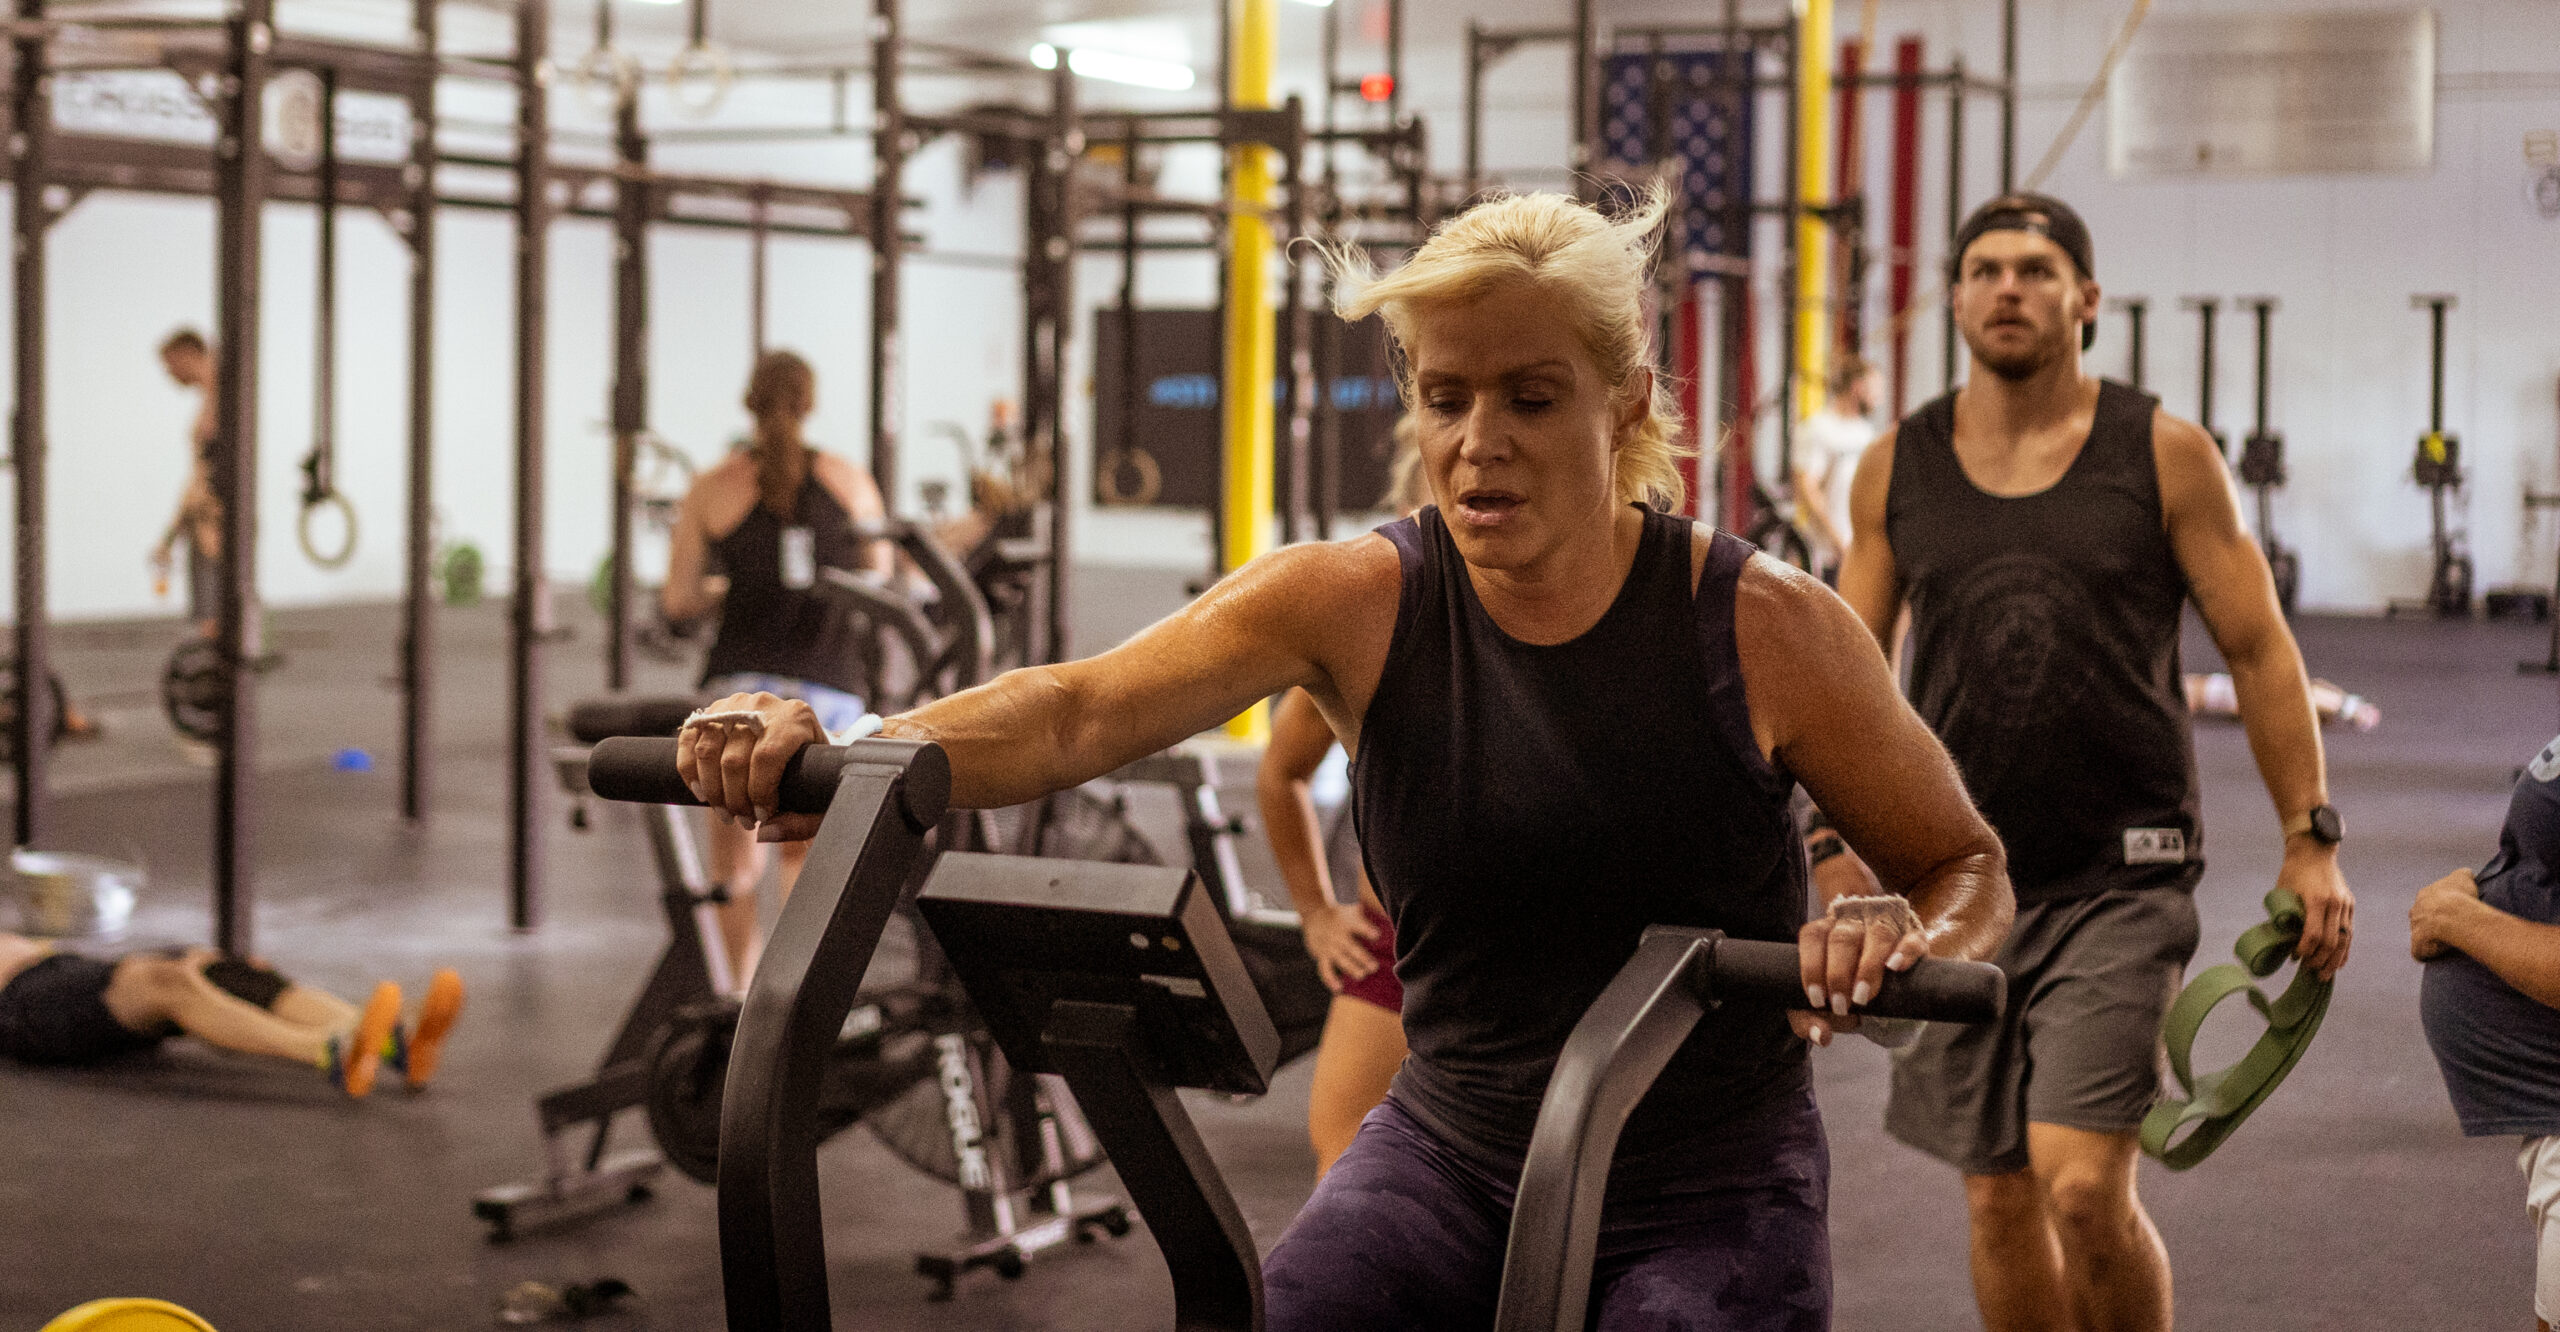 On The Road And Want To Workout? Here's What To Look For In A Gym!